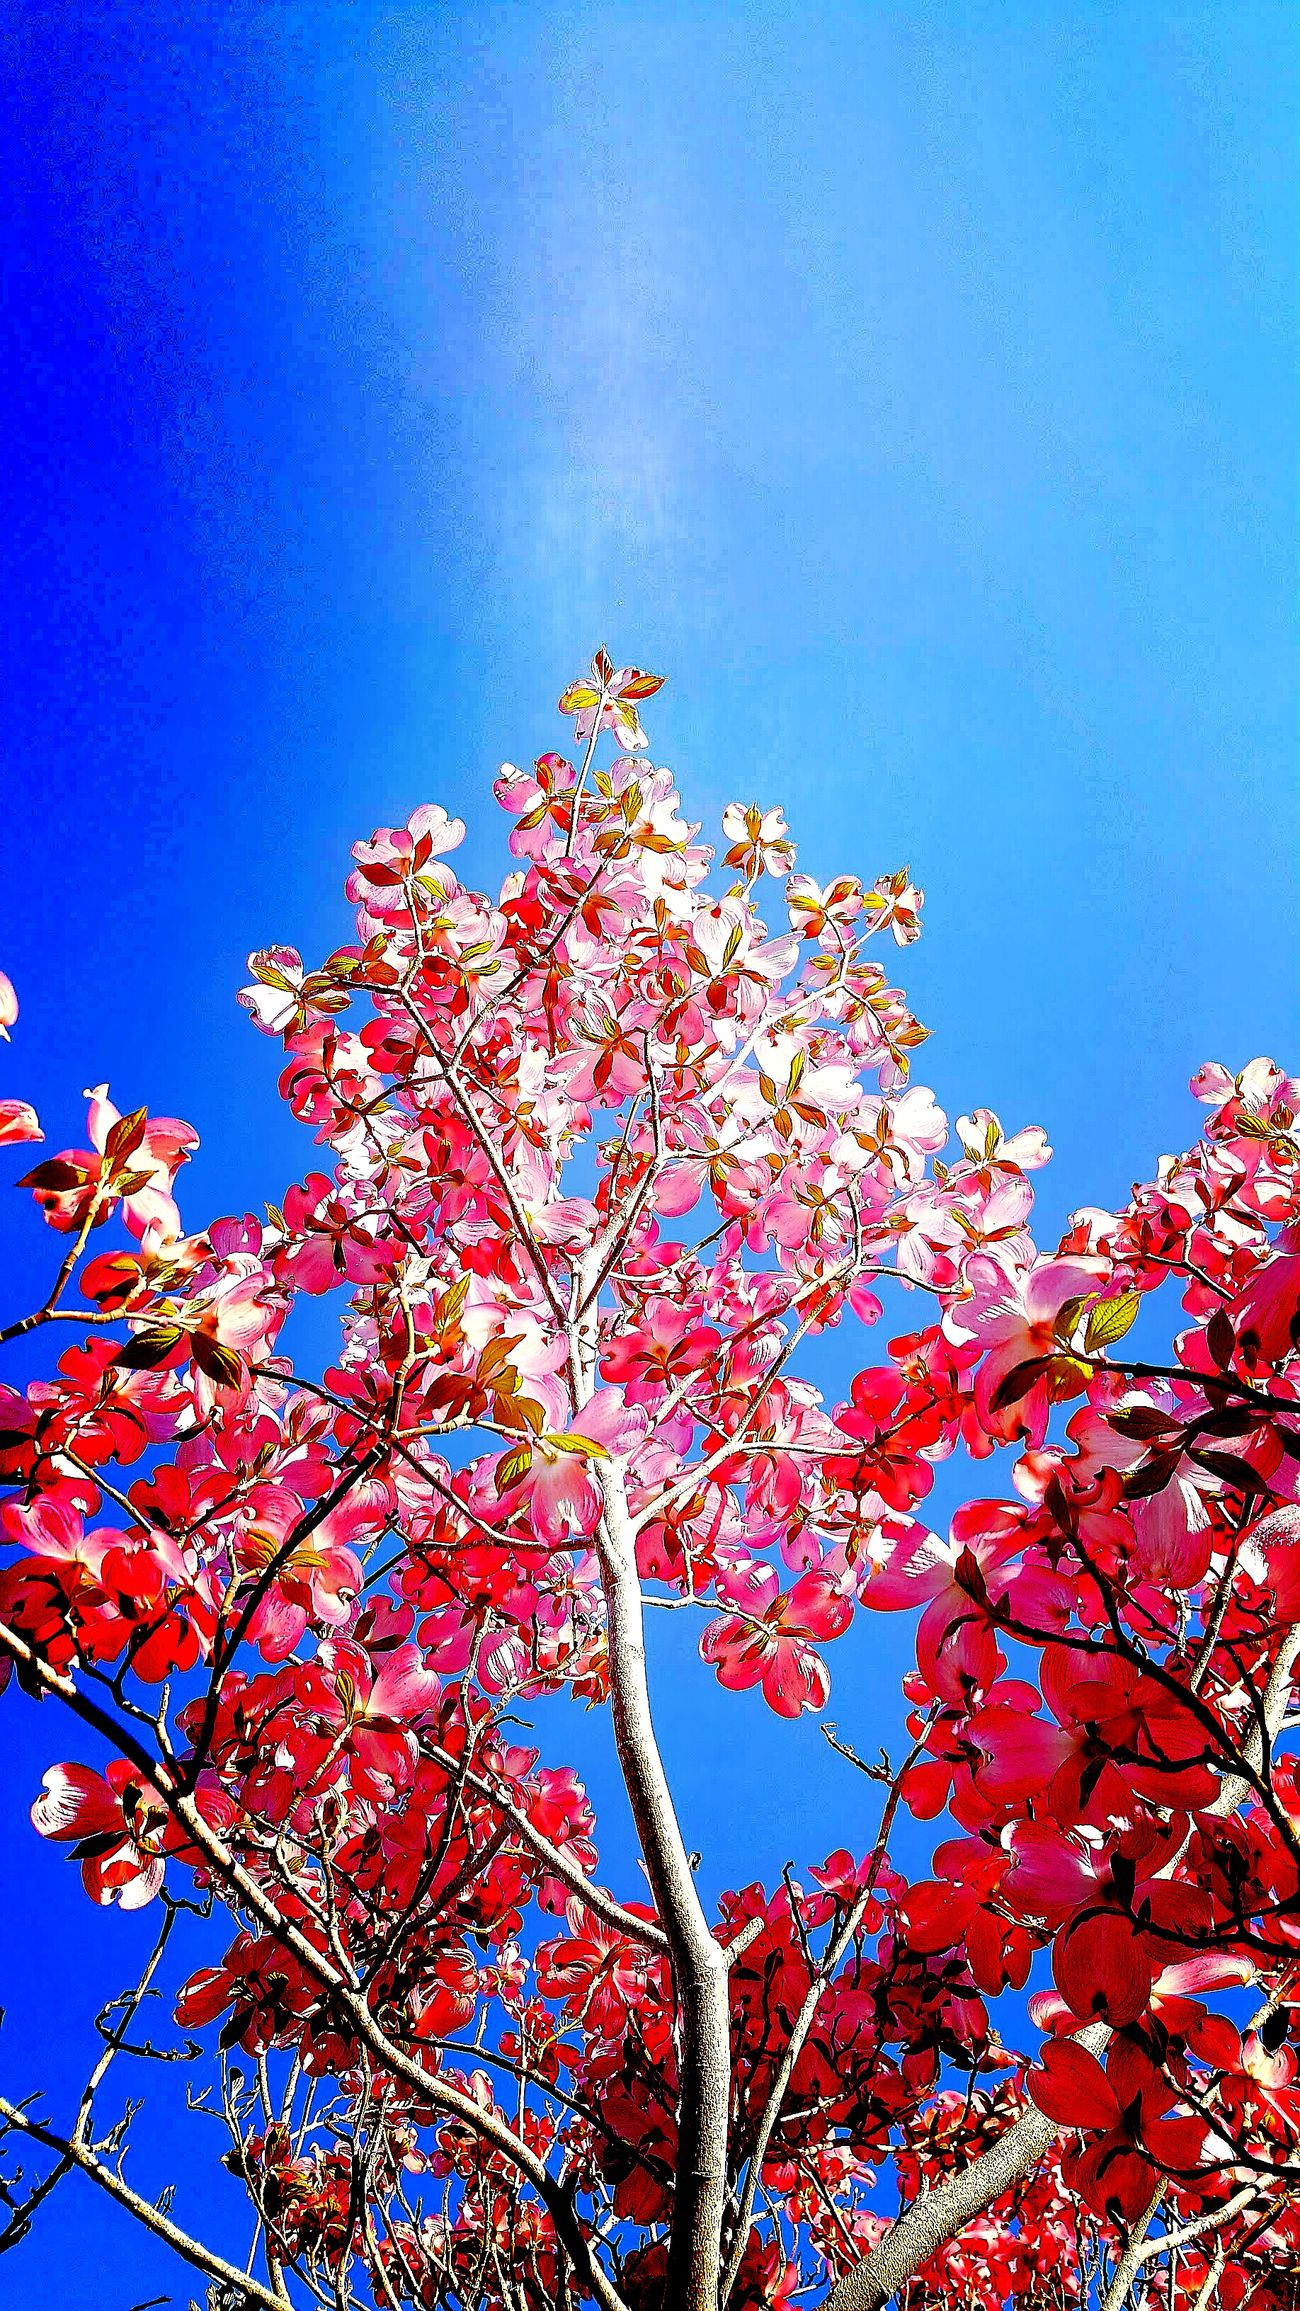 Low Angle View Sky Blue Day Tree Clear Sky Beauty In Nature Pink Flower 🌸 Tronco Ramas🌿